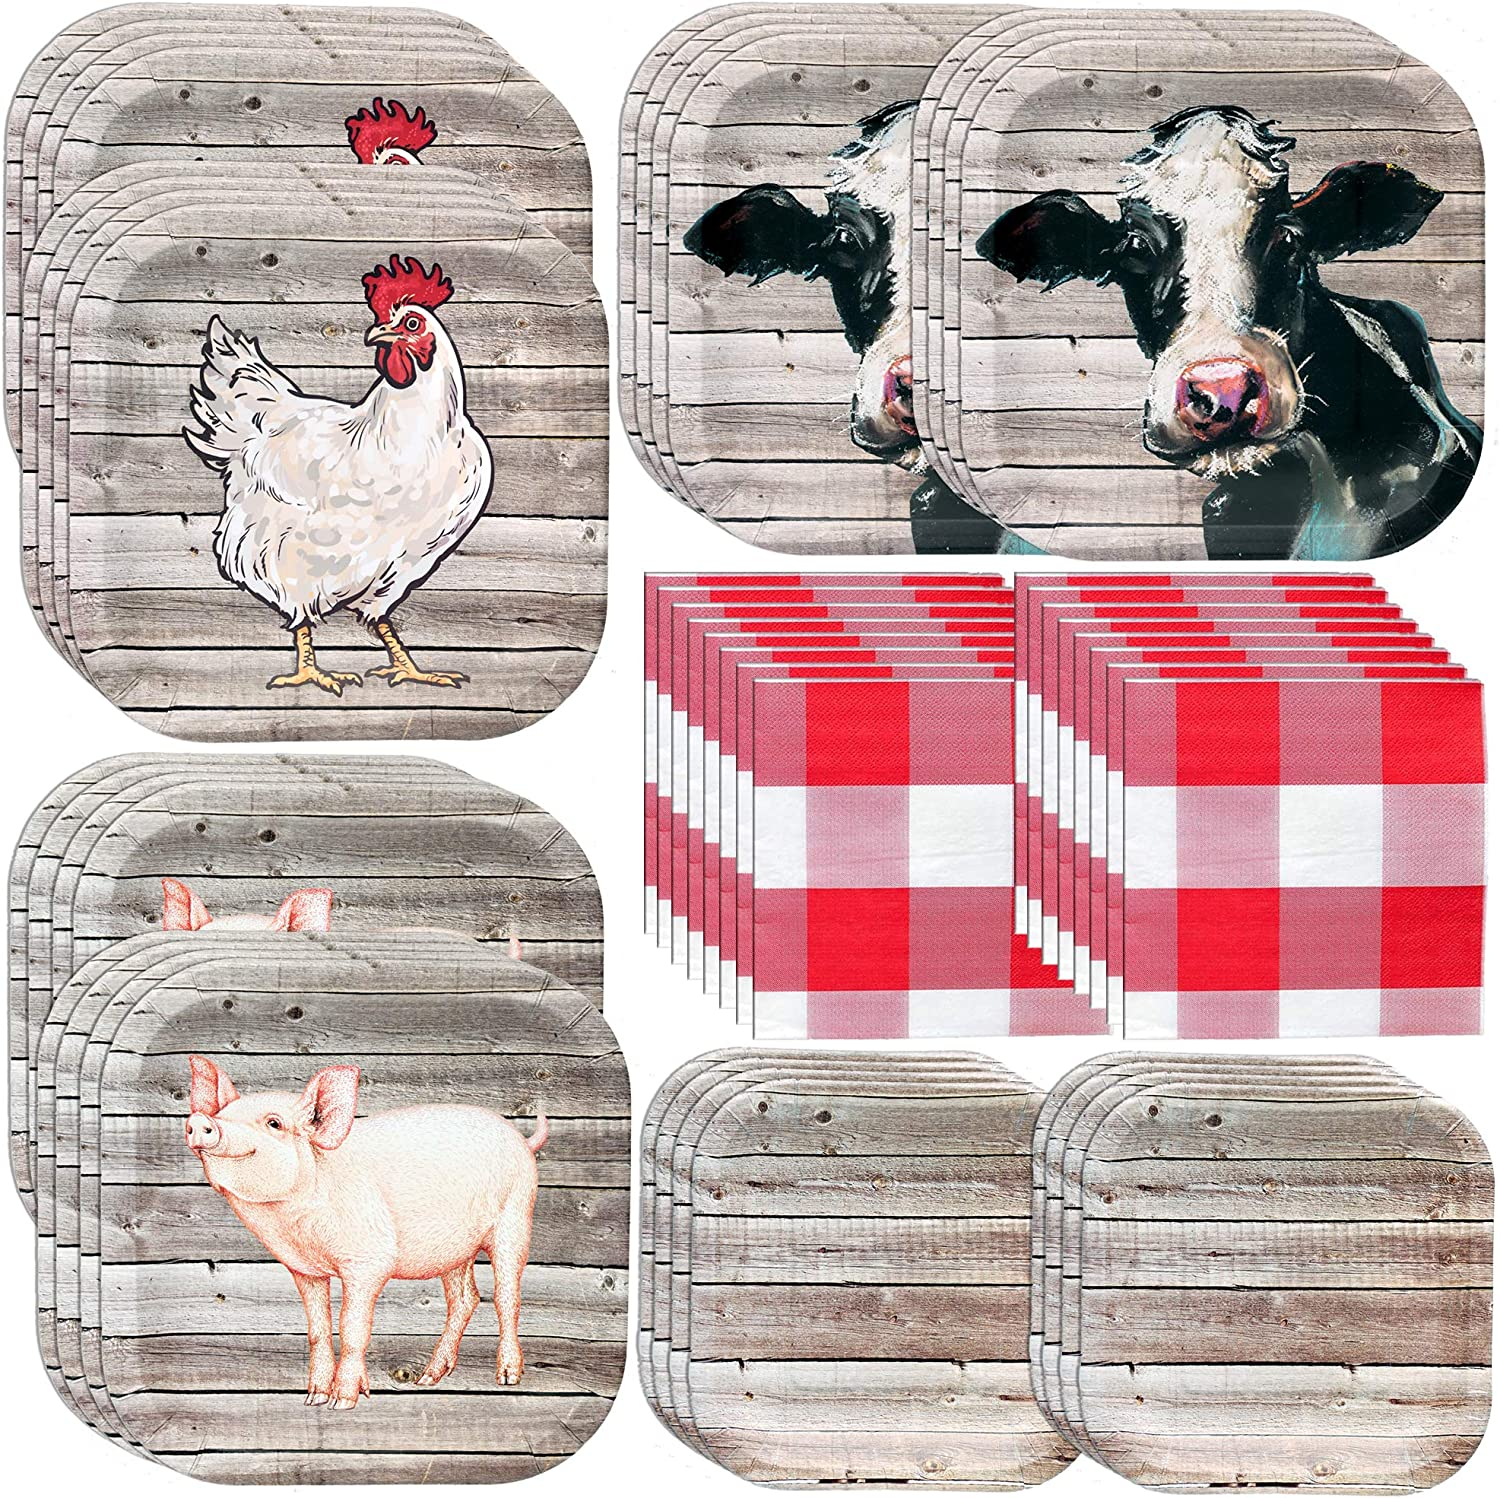 Havercamp Farm Table Party Bundle | Dinner & Dessert Plates, Luncheon Napkins | Great for Rustic Farm Themed Events, Barbeque Parties, and Cookouts